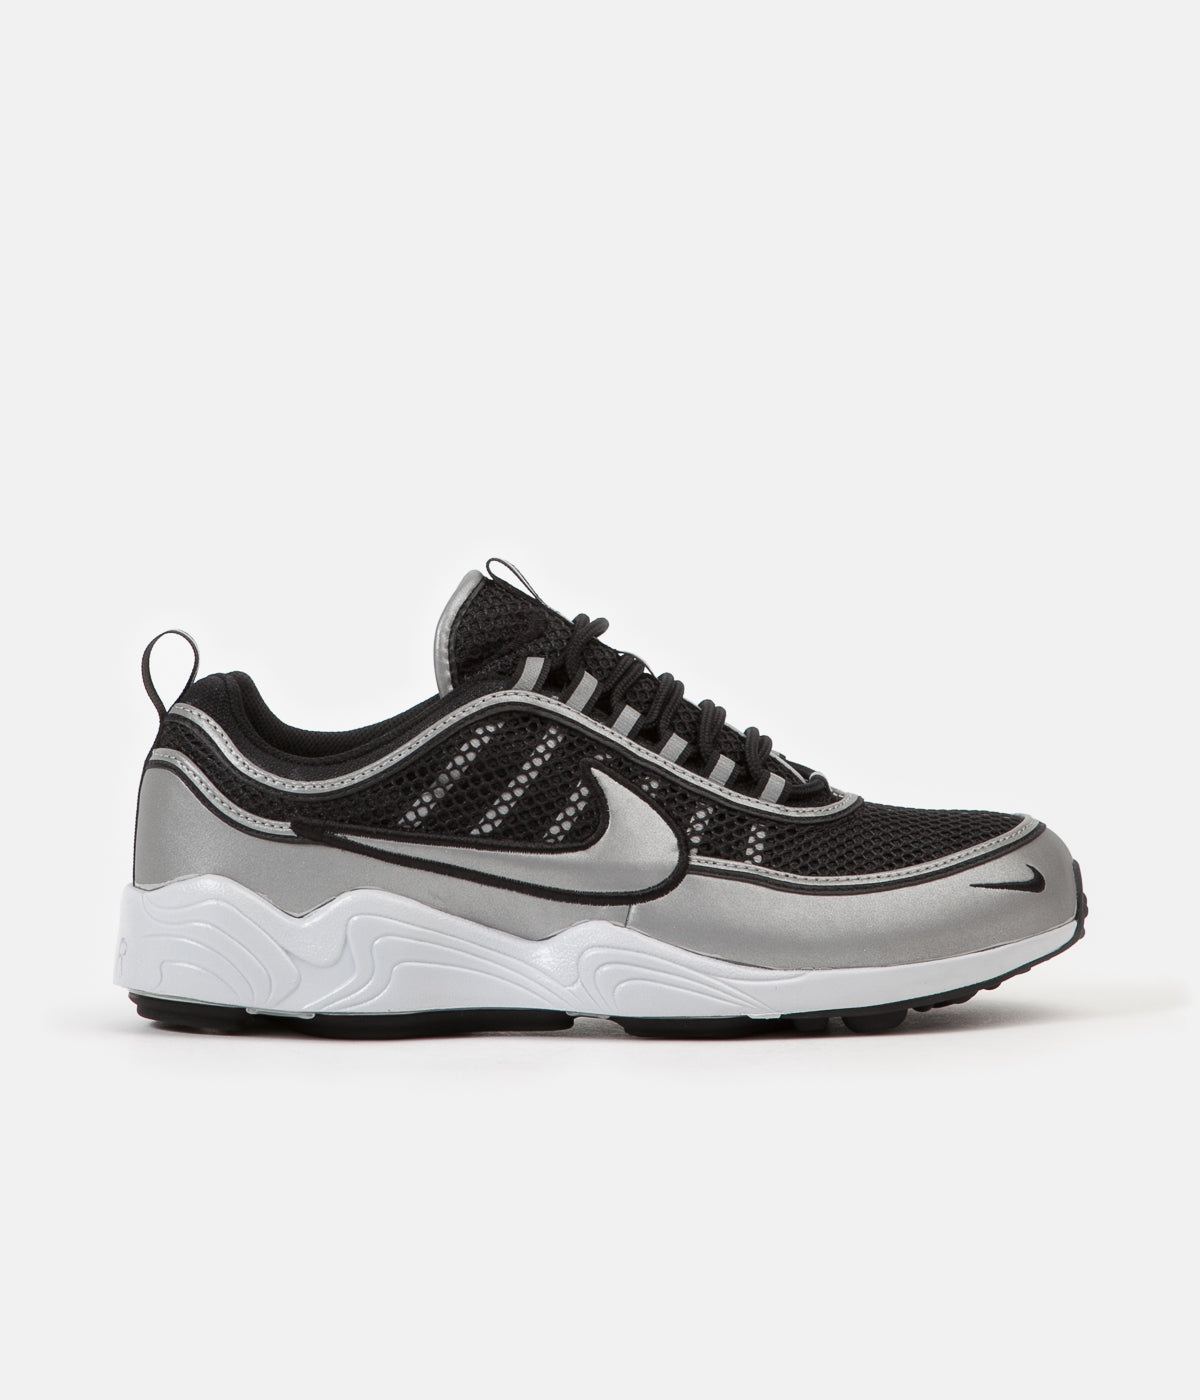 7db4cd247066 ... Nike Air Zoom Spiridon  16 Shoes - Black   Metallic Silver - Metallic  Silver ...